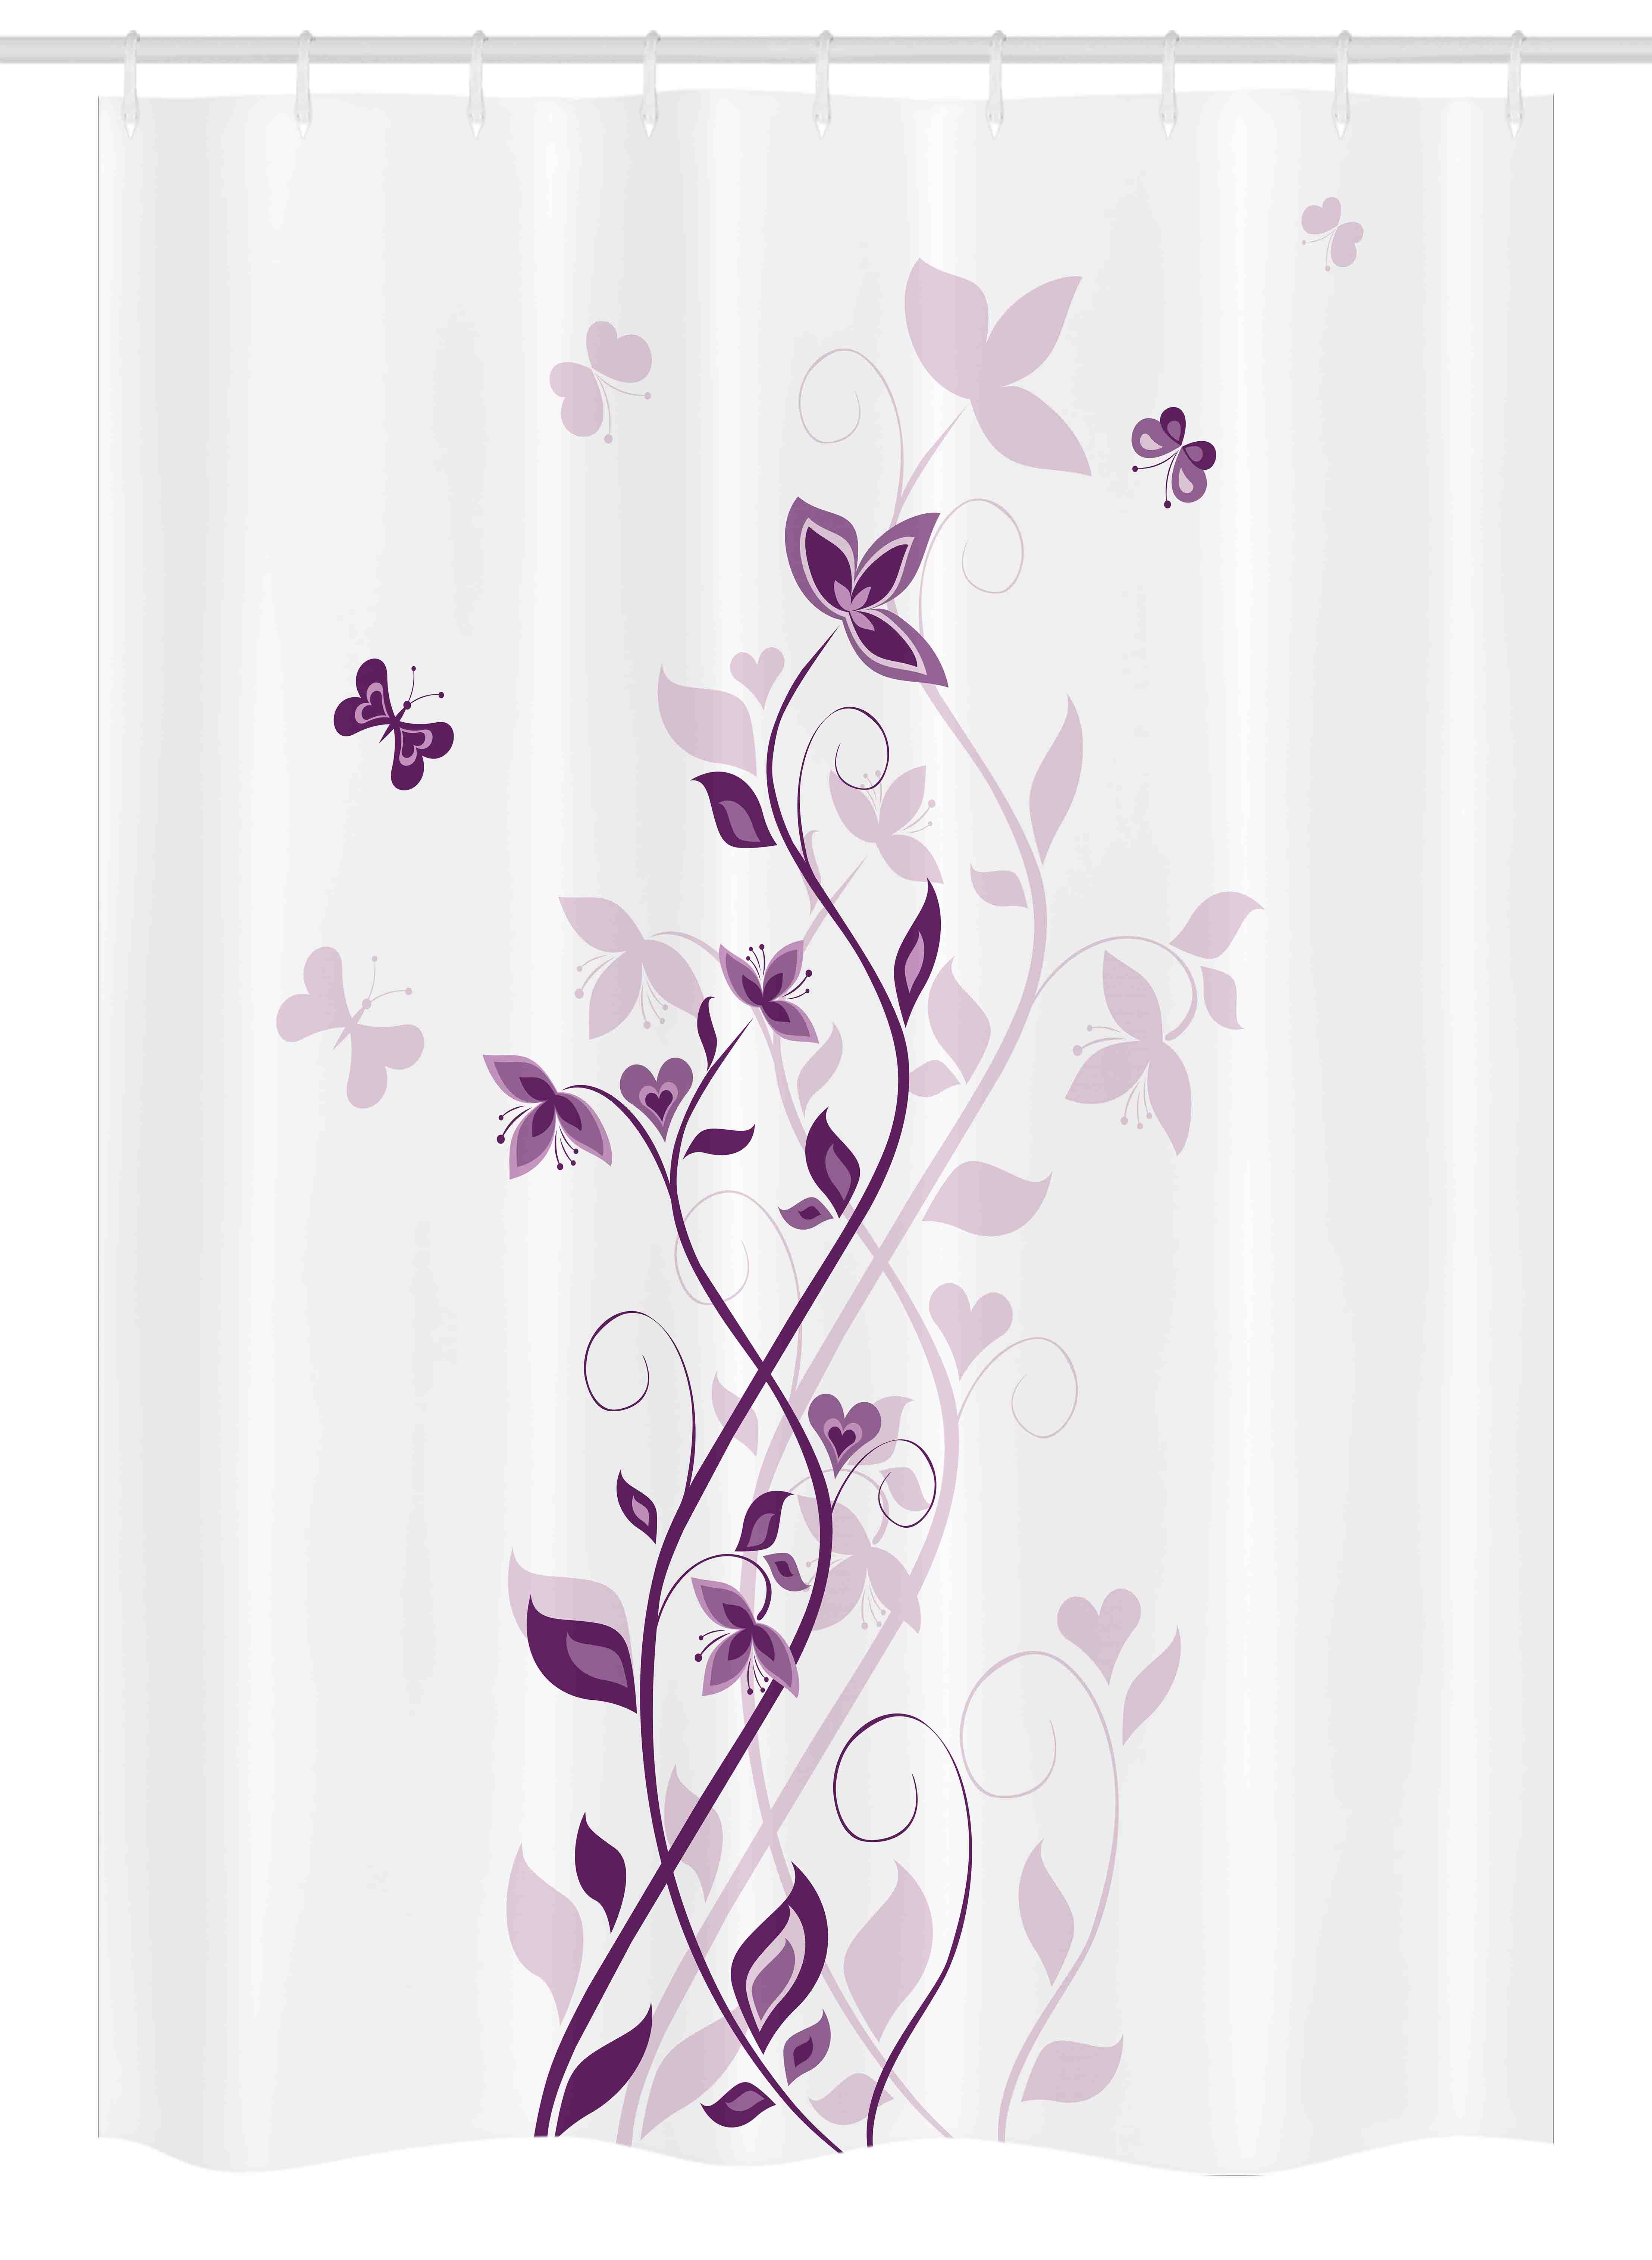 purple stall shower curtain violet tree swirling persian lilac blooms with butterfly ornamental plant graphic fabric bathroom set with hooks 54w x